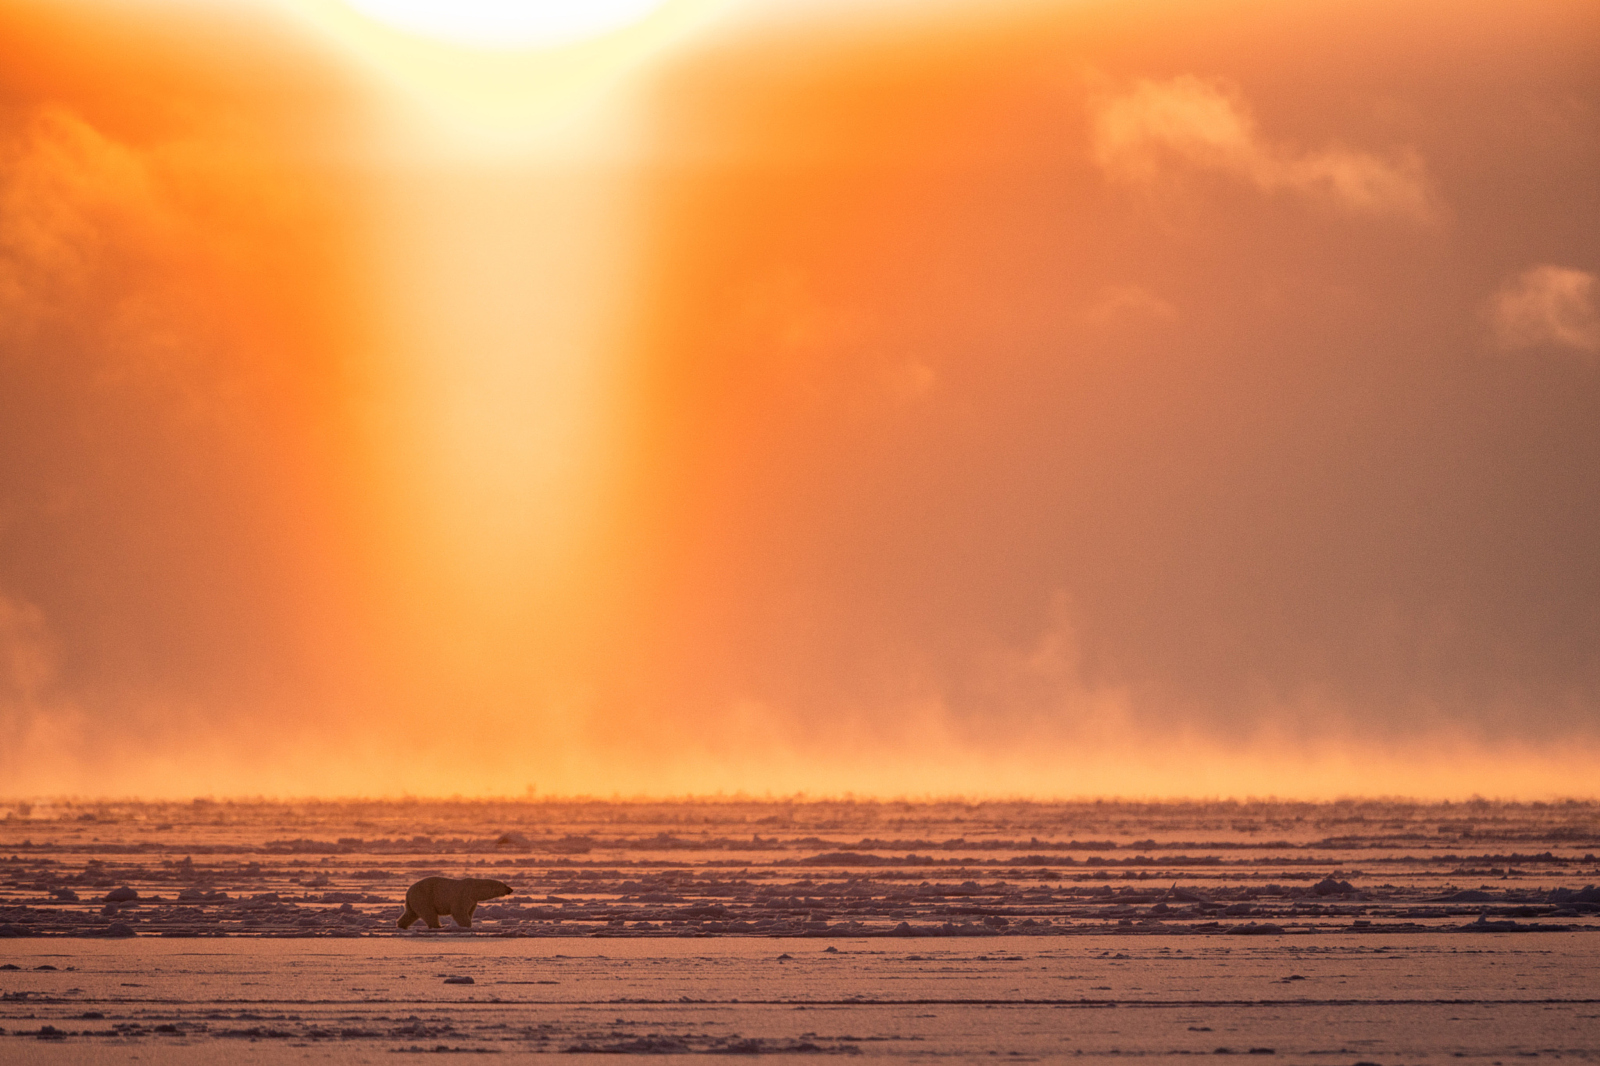 A Day in the Life of Photographer & Arctic Explorer Josh Anon